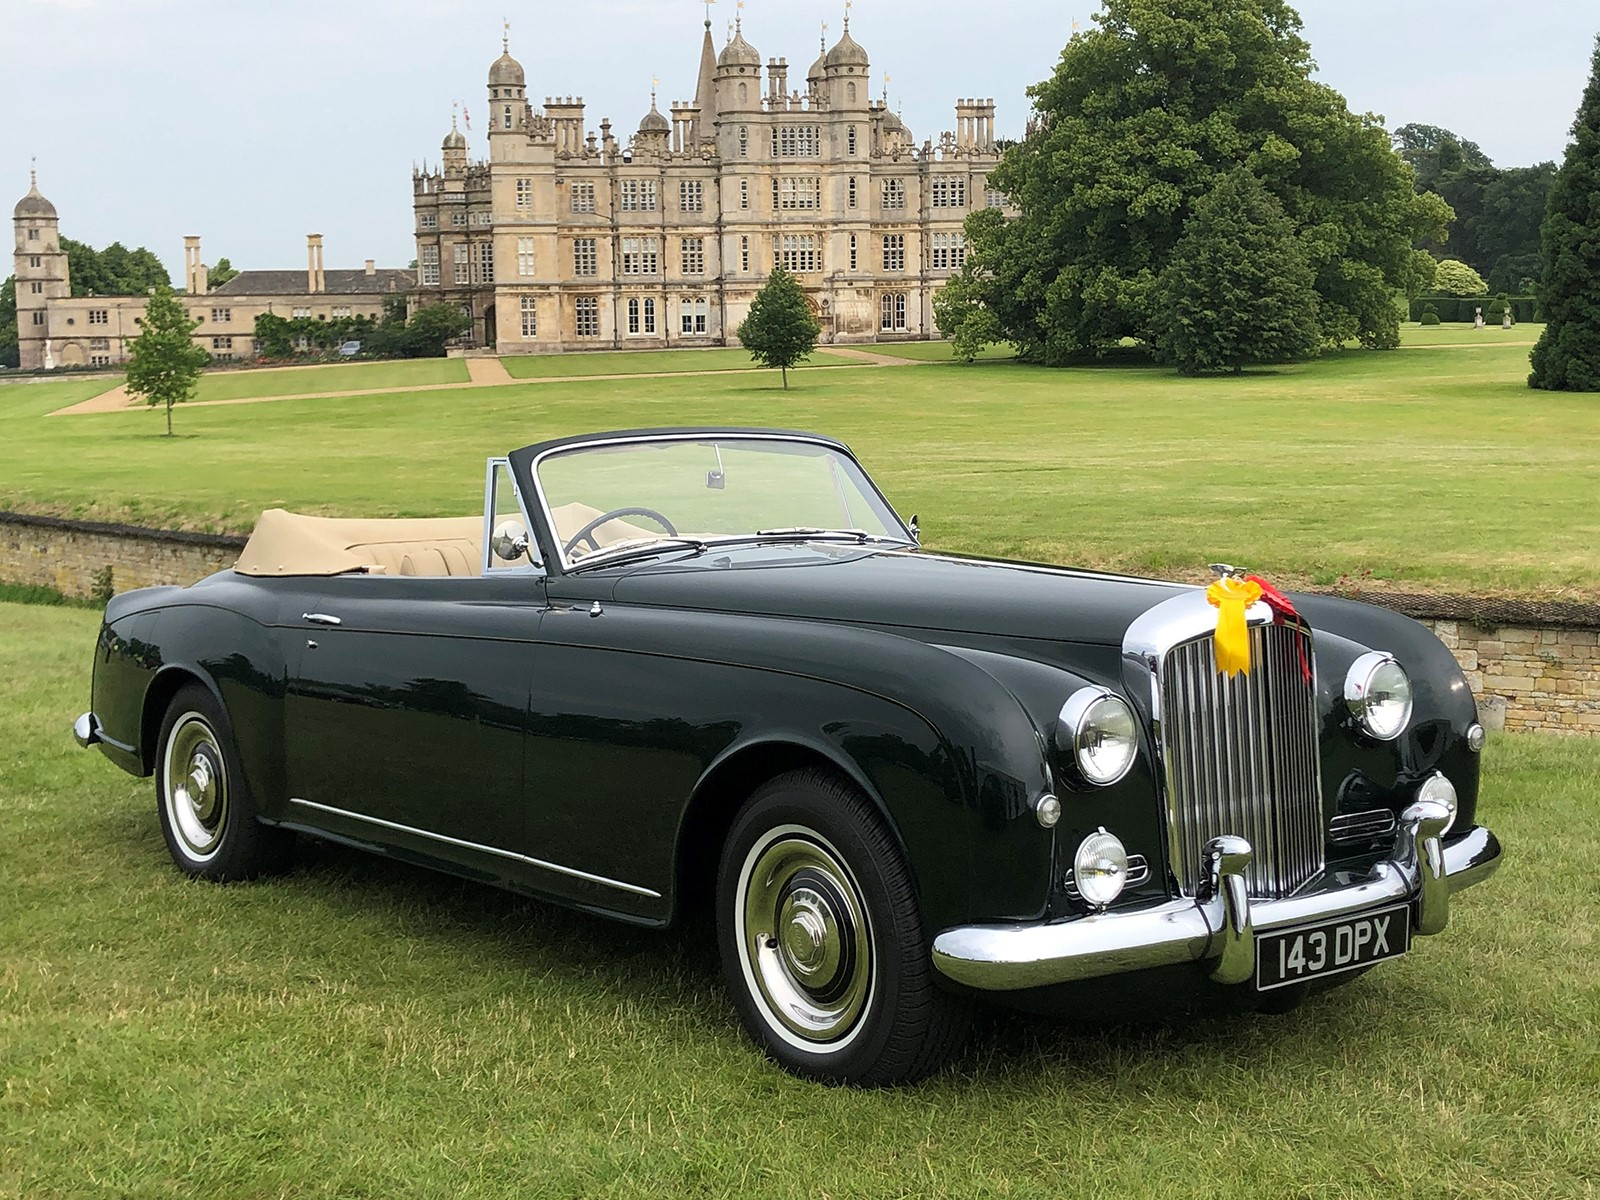 Restoration for modern and classic Bentley and Rolls-Royce cars